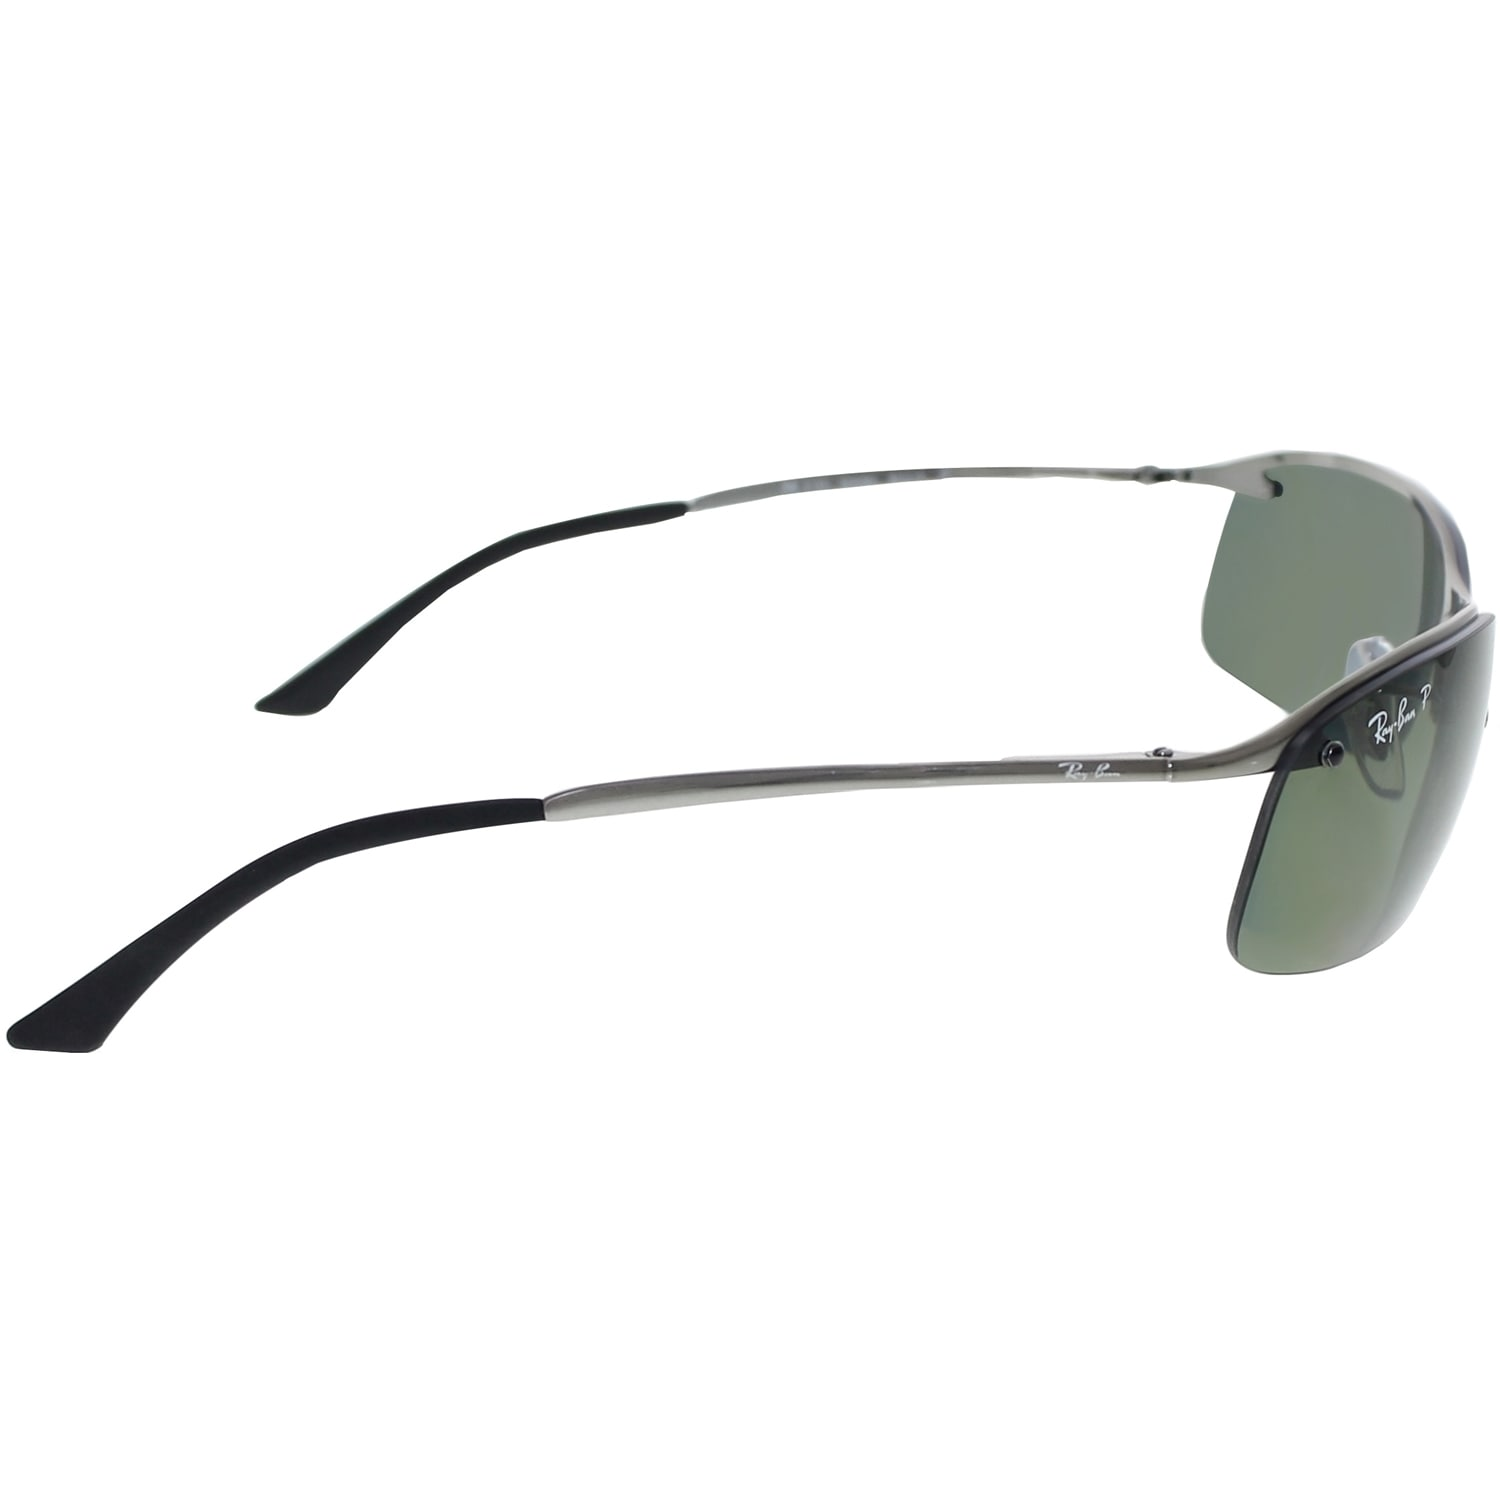 2c61ebe8e716c Shop Ray-Ban RB3183 004 9A Gunmetal Frame Polarized Green 63mm Lens  Sunglasses - Free Shipping Today - Overstock.com - 14327888